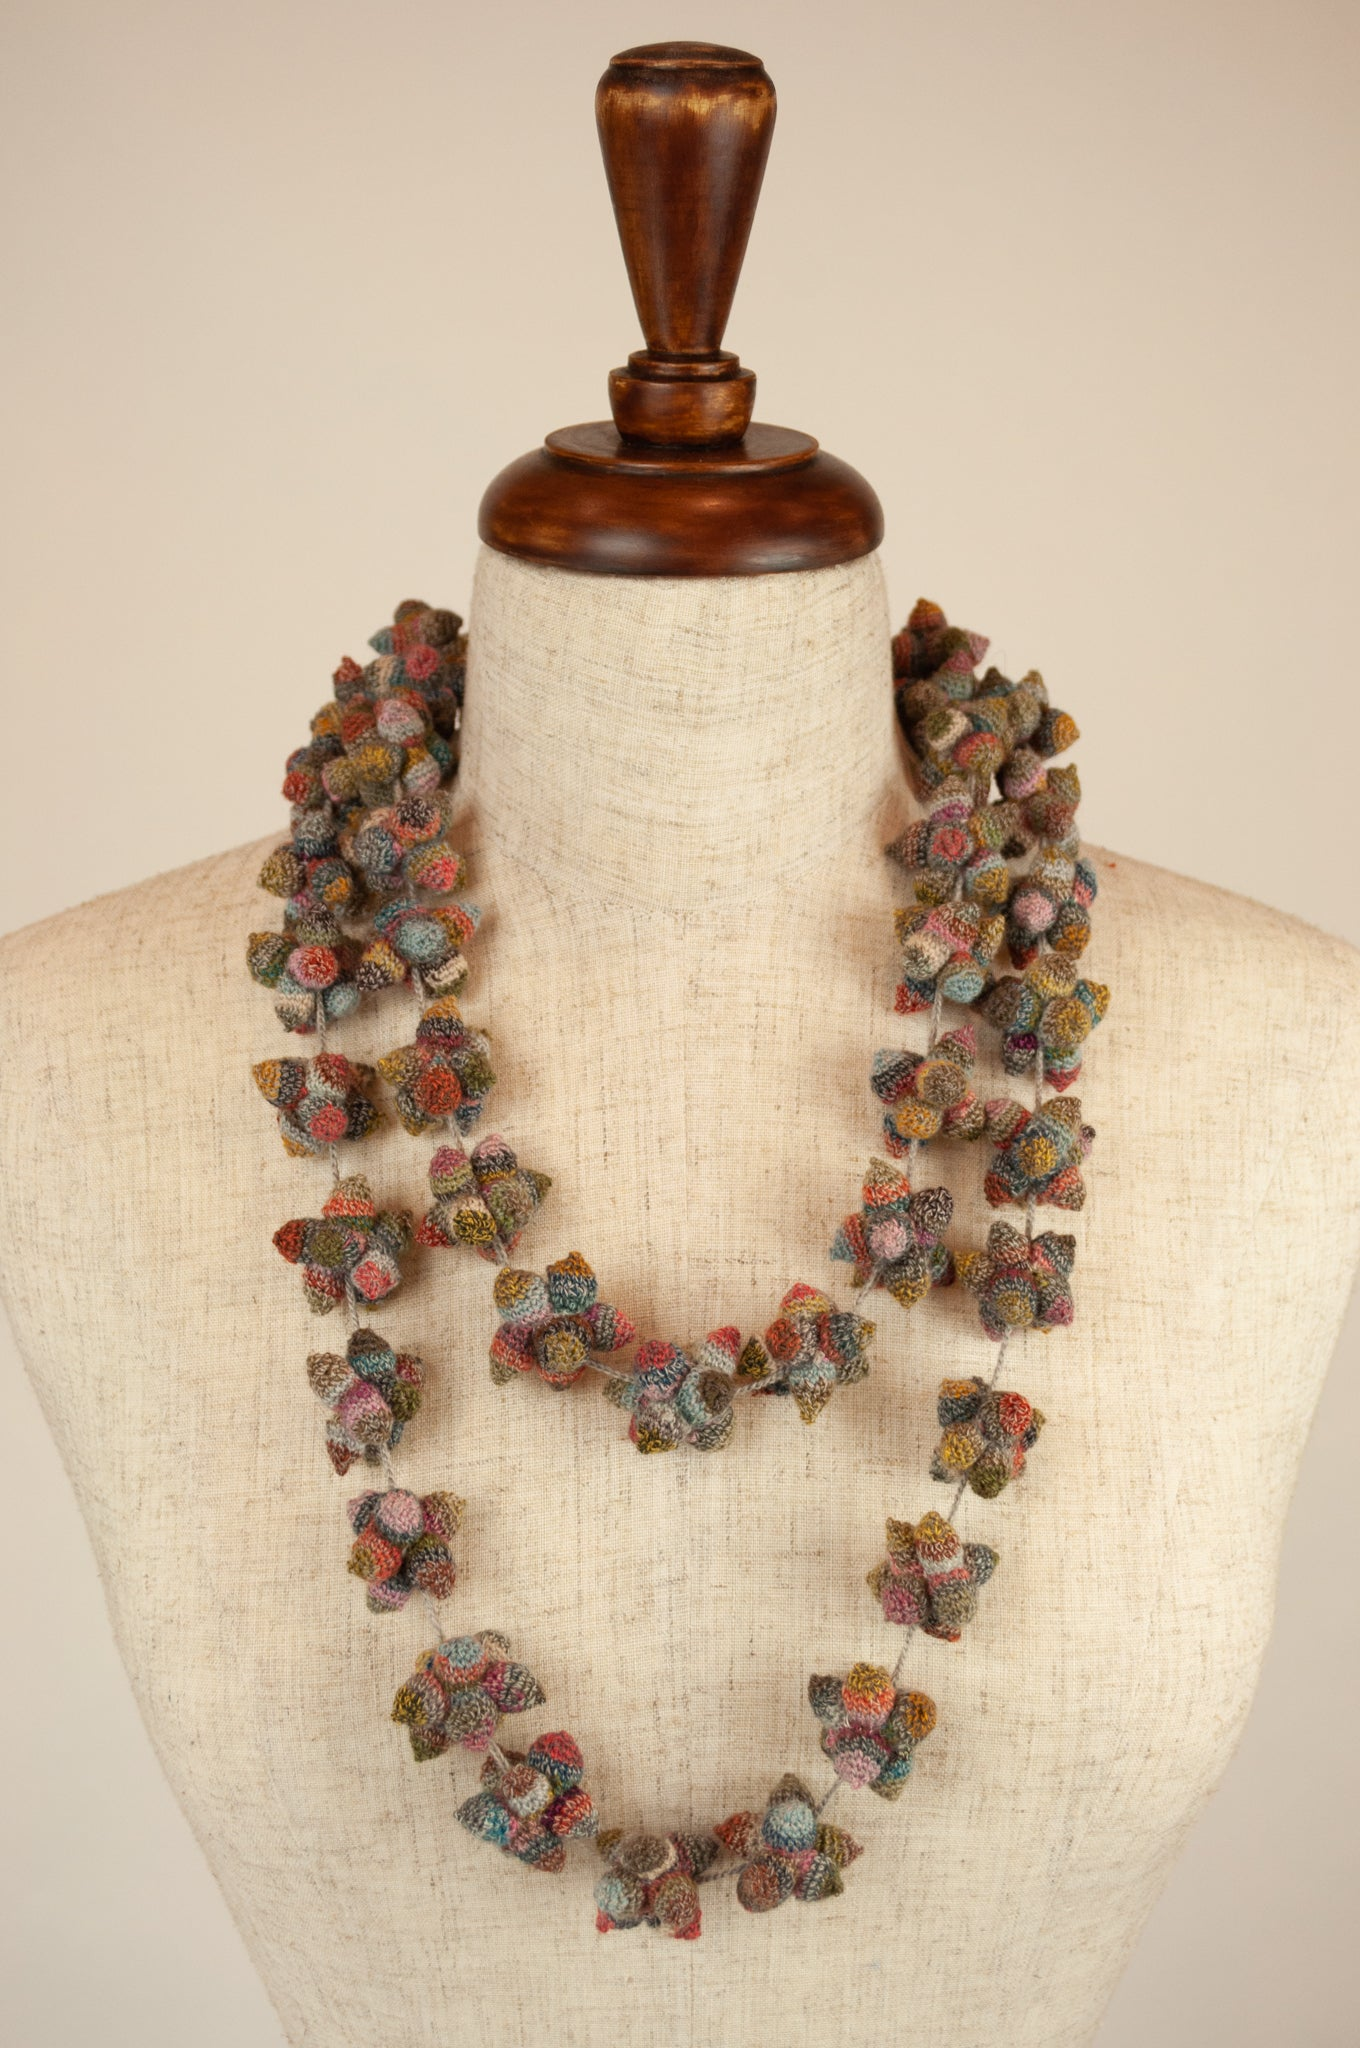 Sophie Digard necklace - sculptural flowers